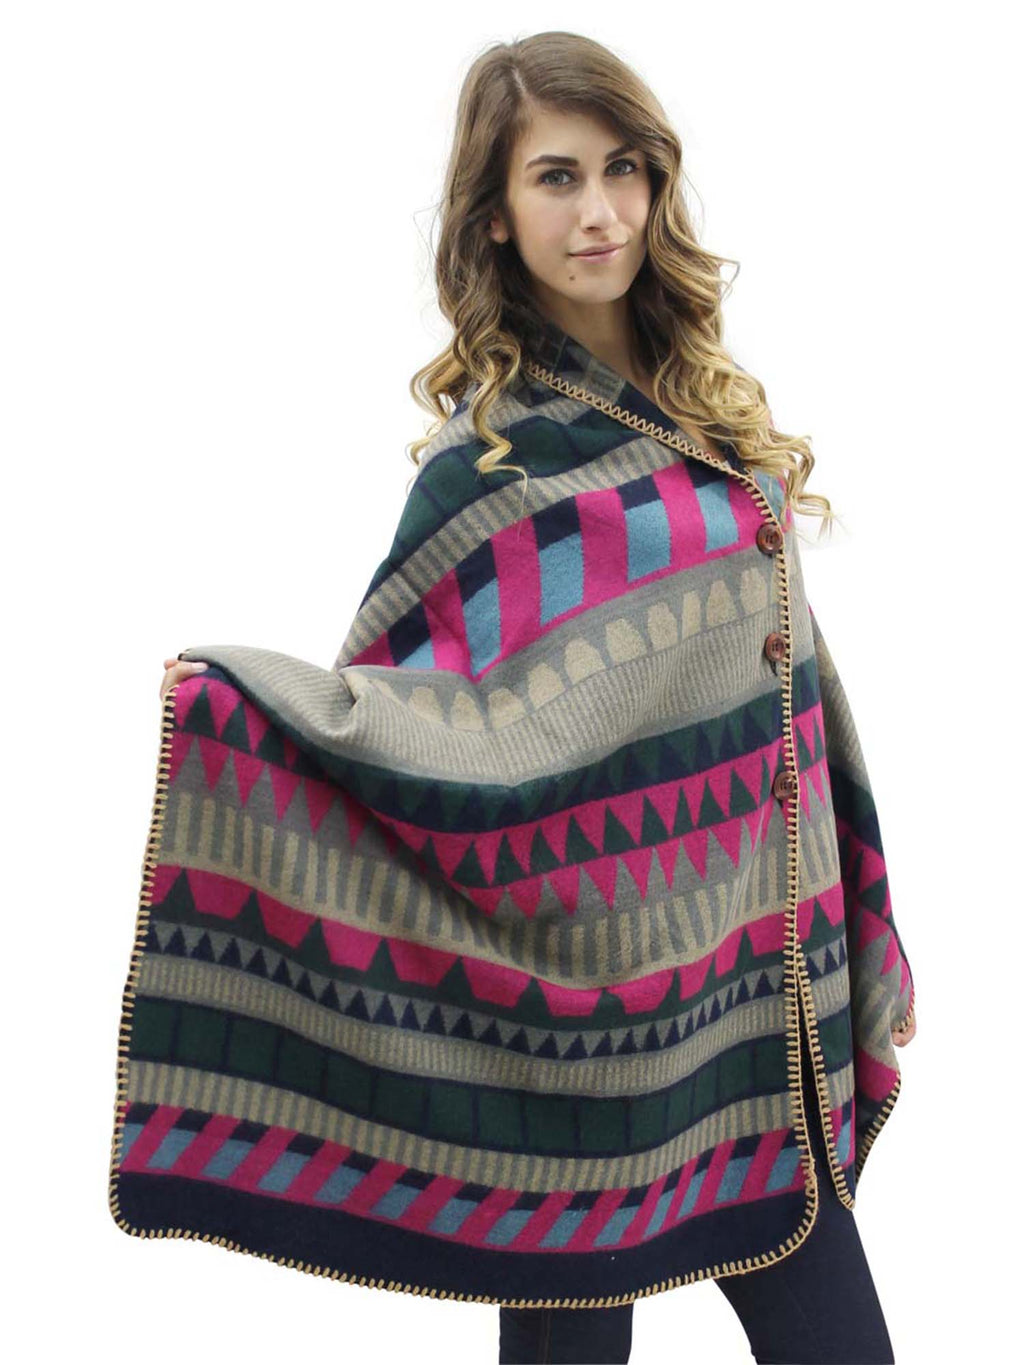 Colorful Pattern Poncho Blanket Scarf Wrap